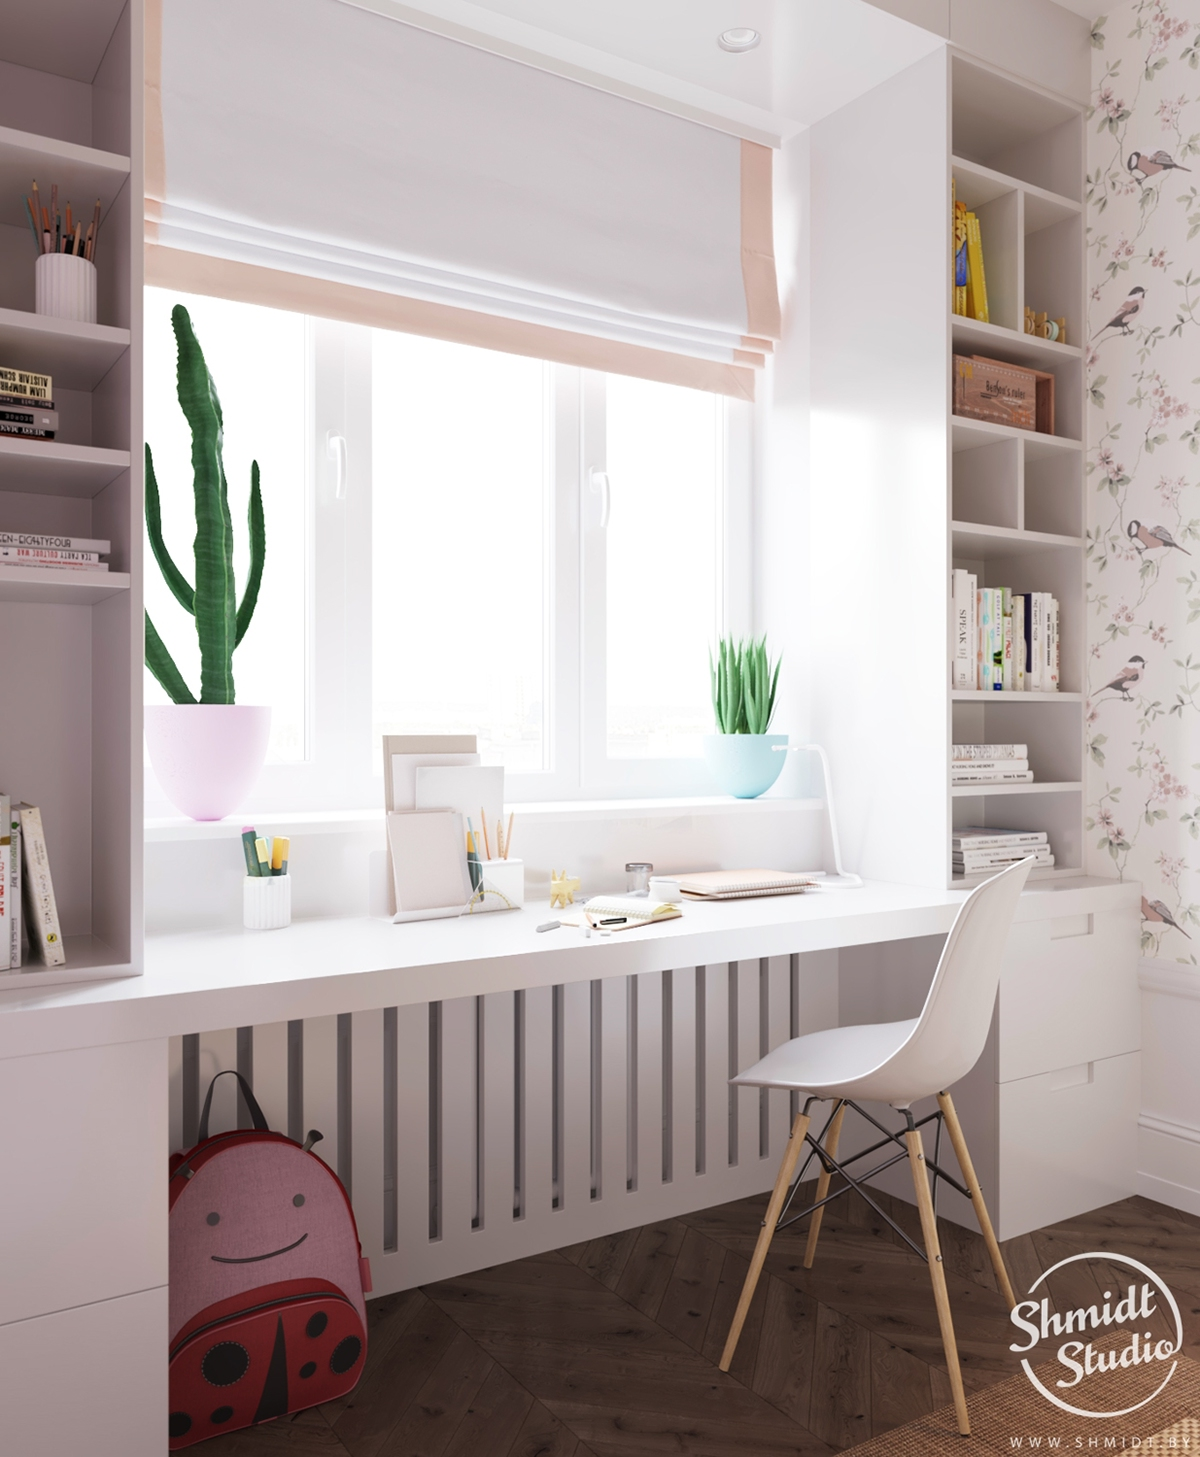 A Scandinavian Chic Style 3 Bedroom Apartment For A Young Family images 32